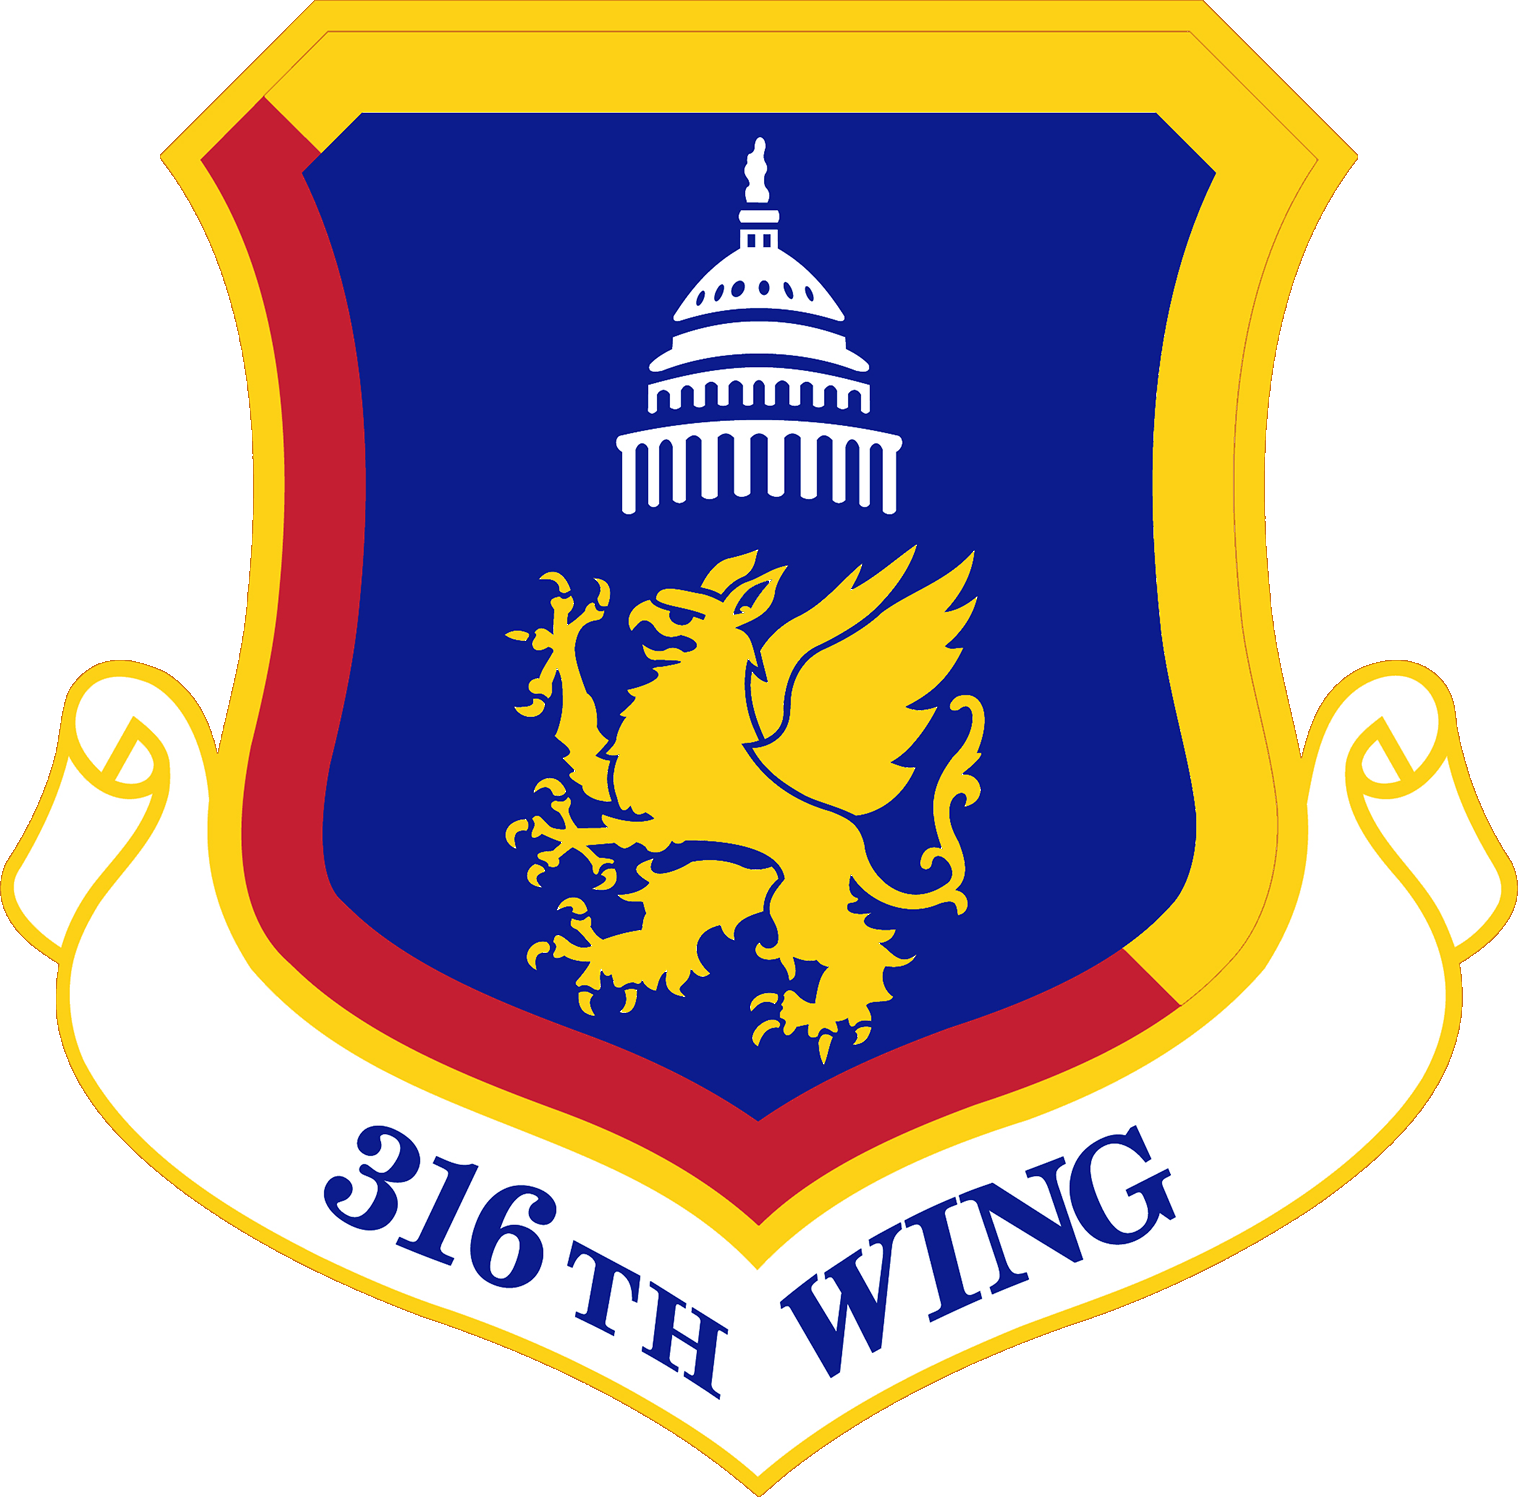 316th wing logo - transparent background